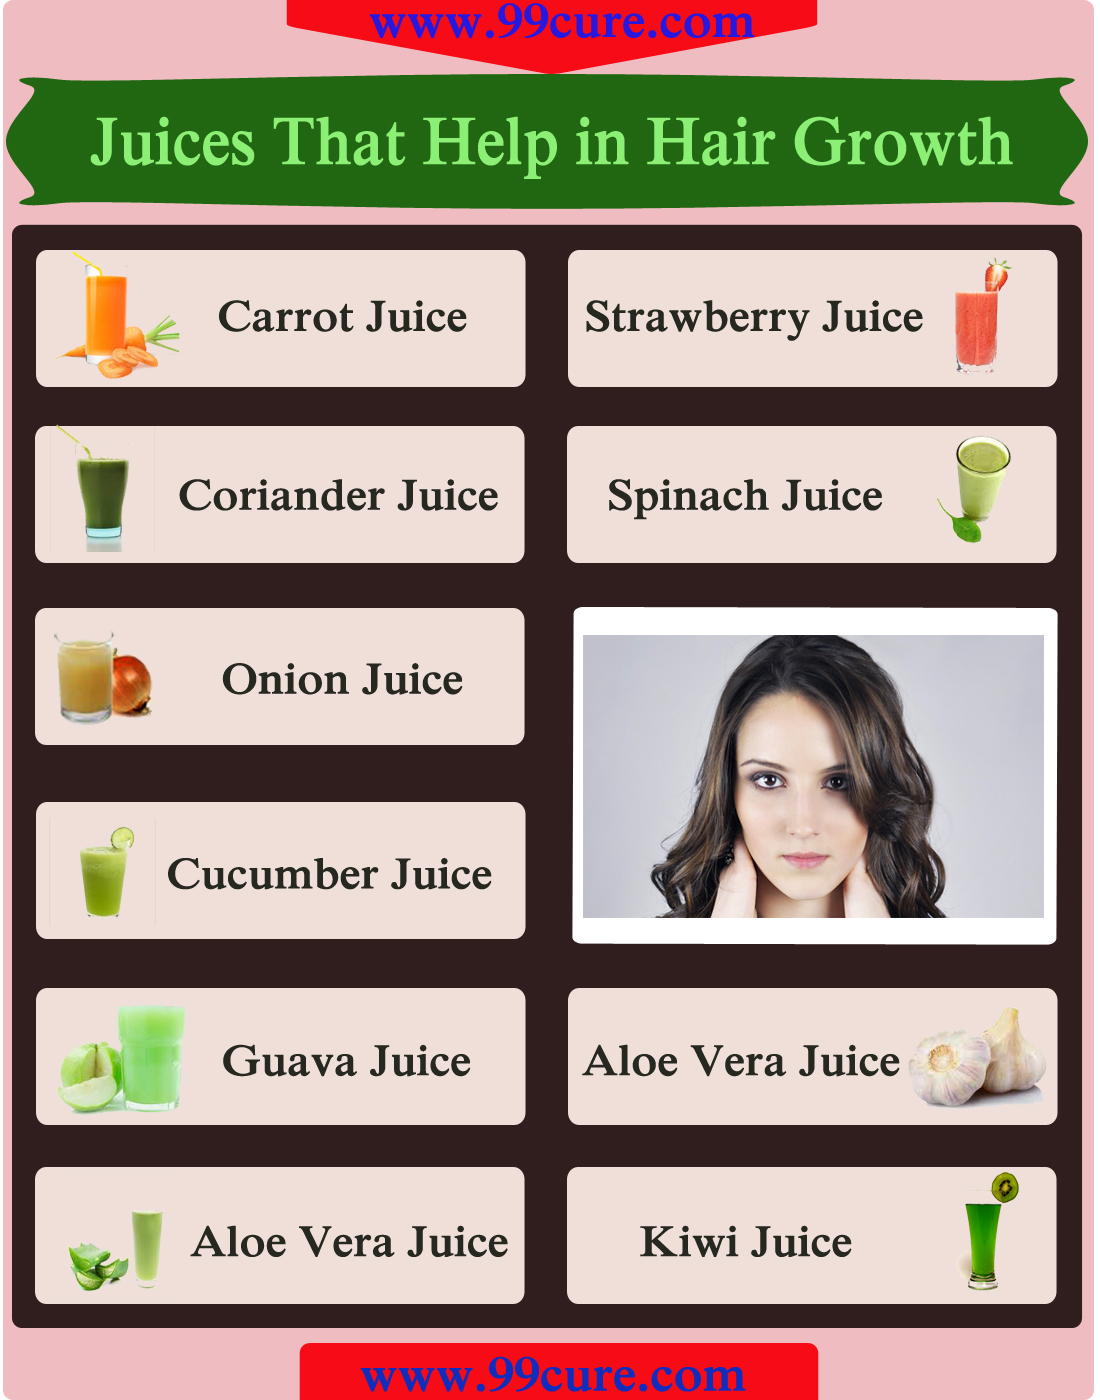 Juices That Help in Hair Growth